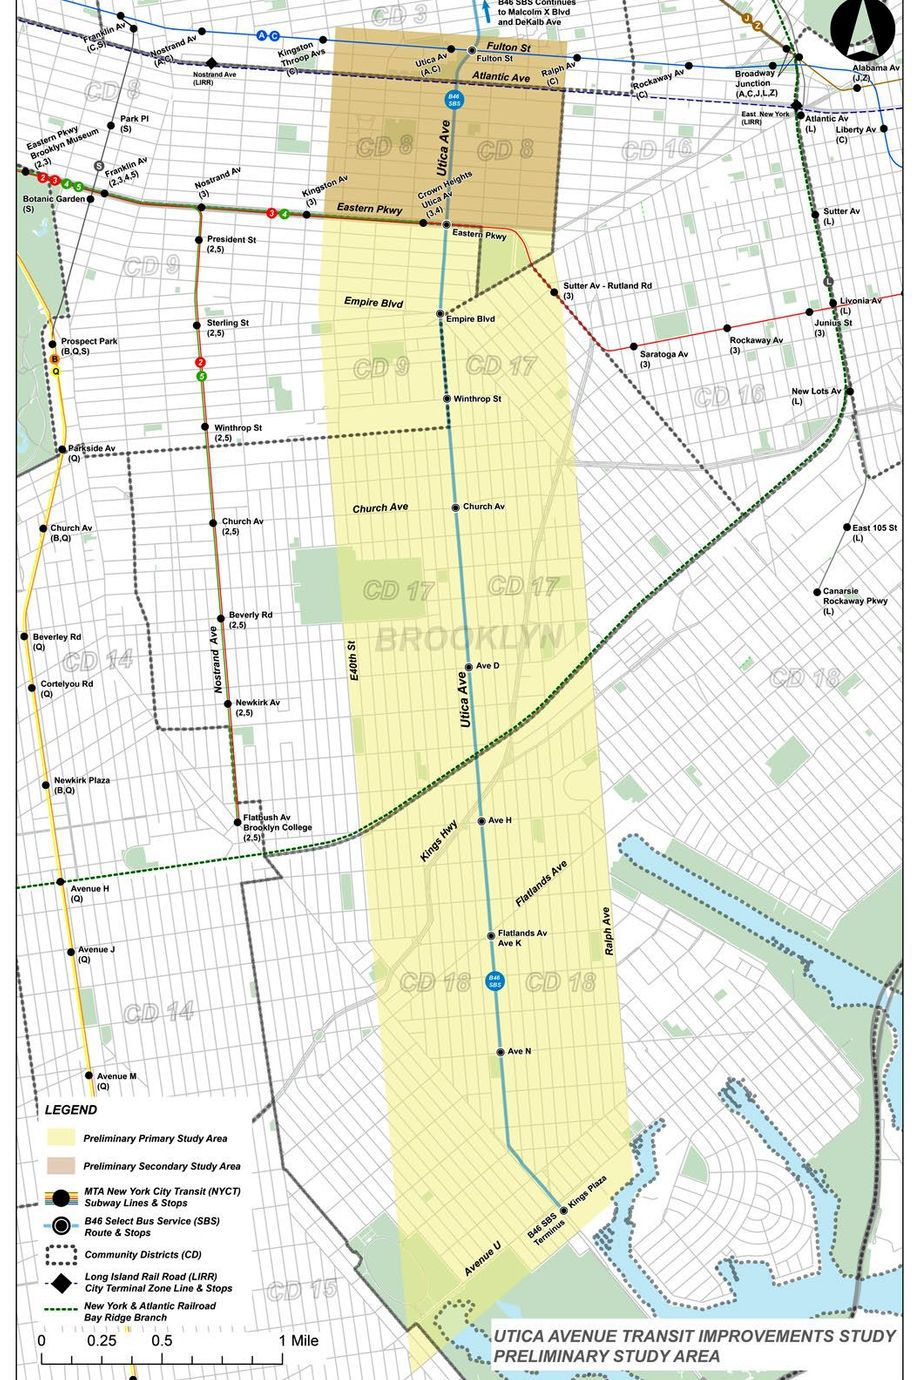 The primary study area is bounded by Eastern Parkway to the north, Ralph Avenue to the east, Avenue V to the south and East 40th Street to the west. The secondary study area extends the study boundaries north to Fulton St.